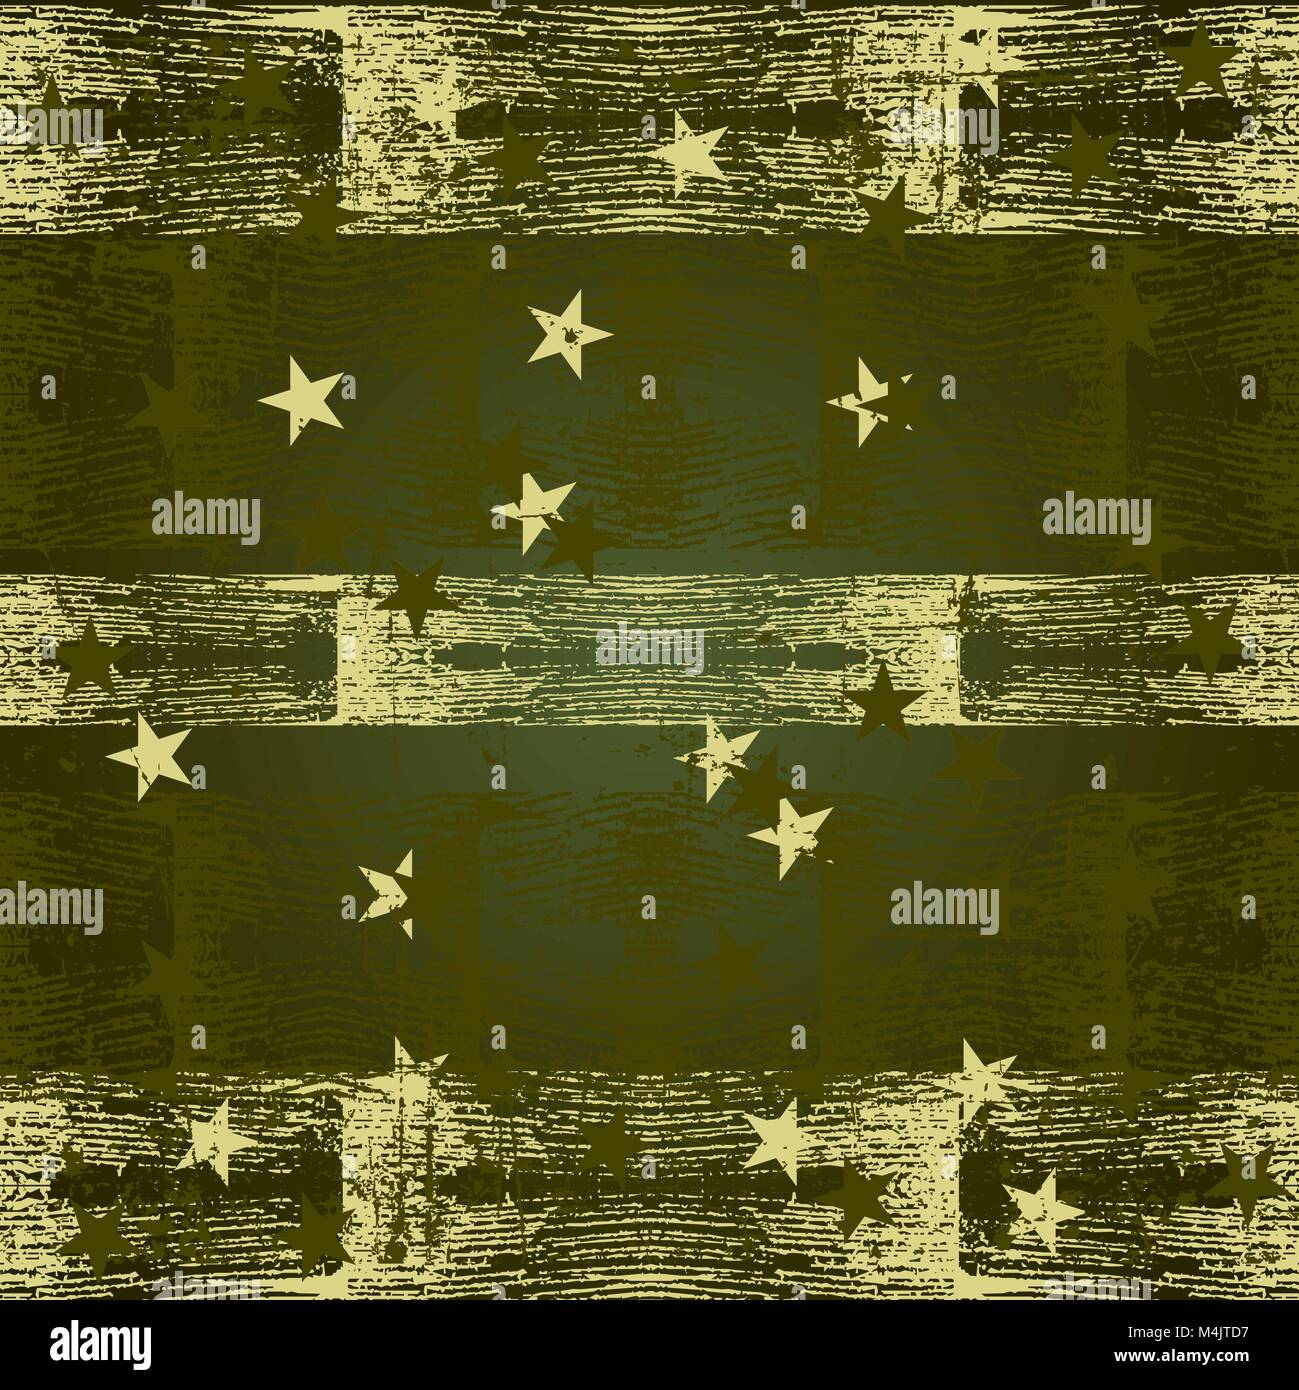 Green grunge texture with asterisks - Stock Image